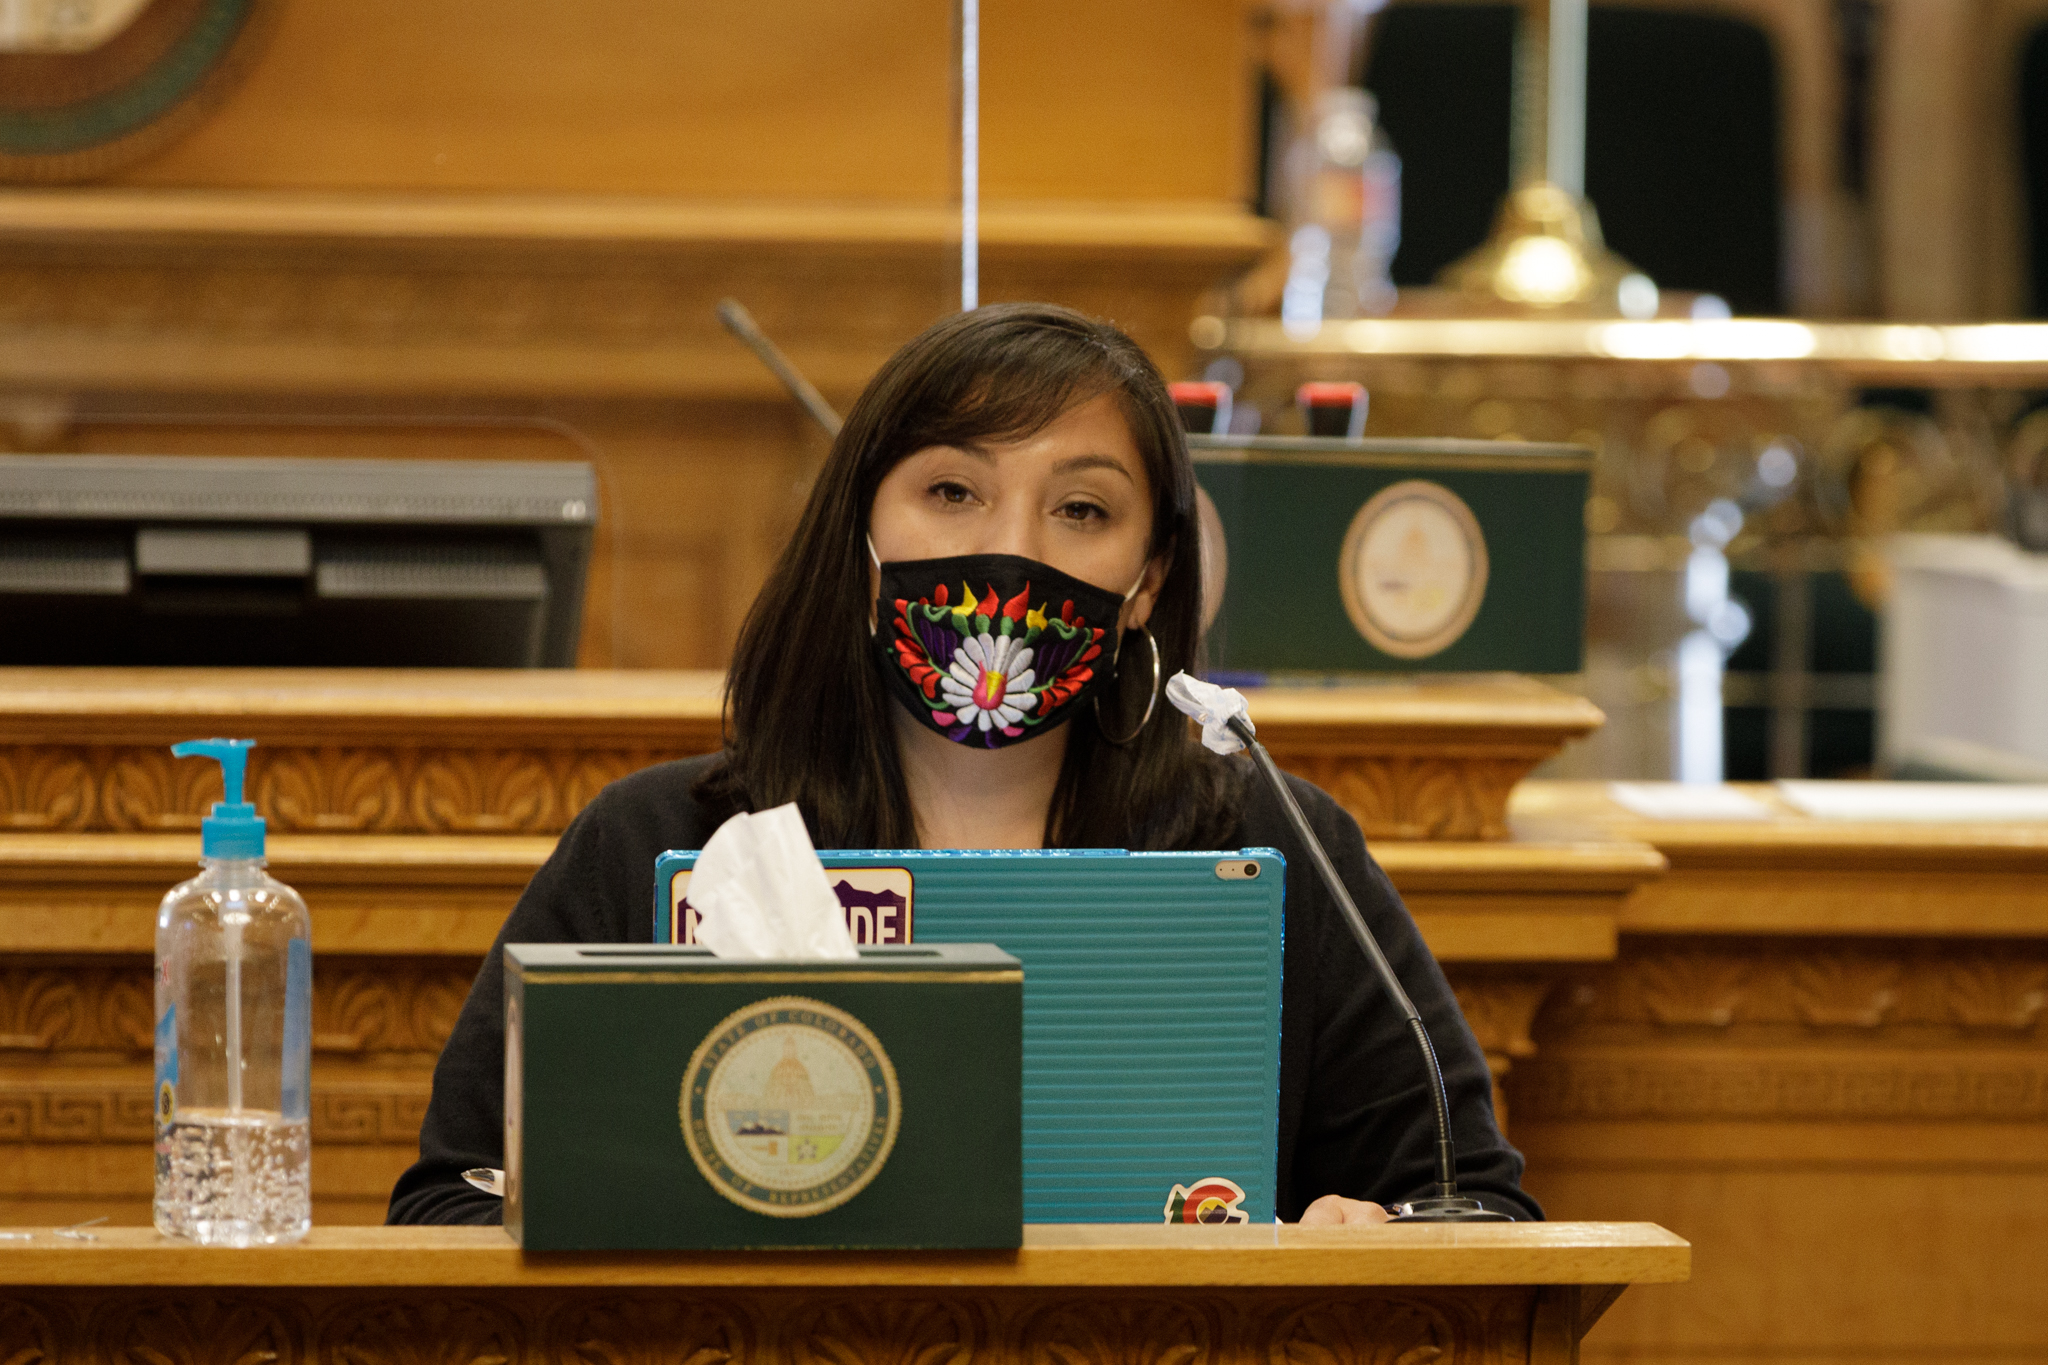 Data privacy protections for undocumented immigrants sought with proposed Colorado bill